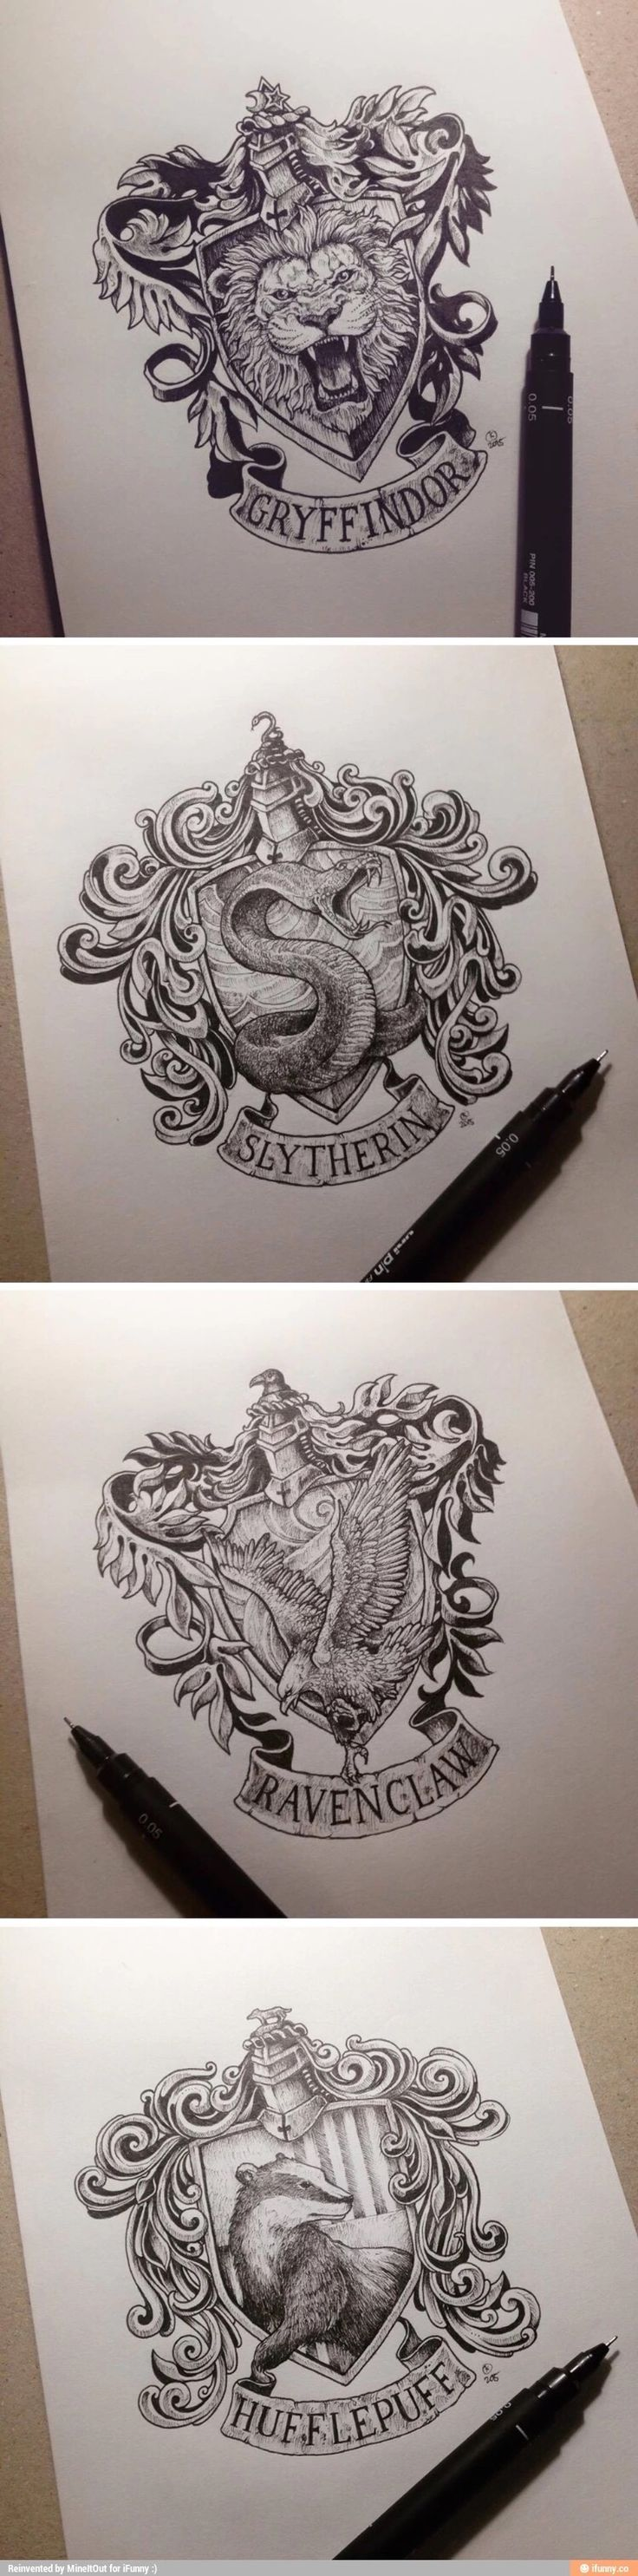 Ink drawings of Gryffindor, Slytherin, Ravenclaw, and Hufflepuff: